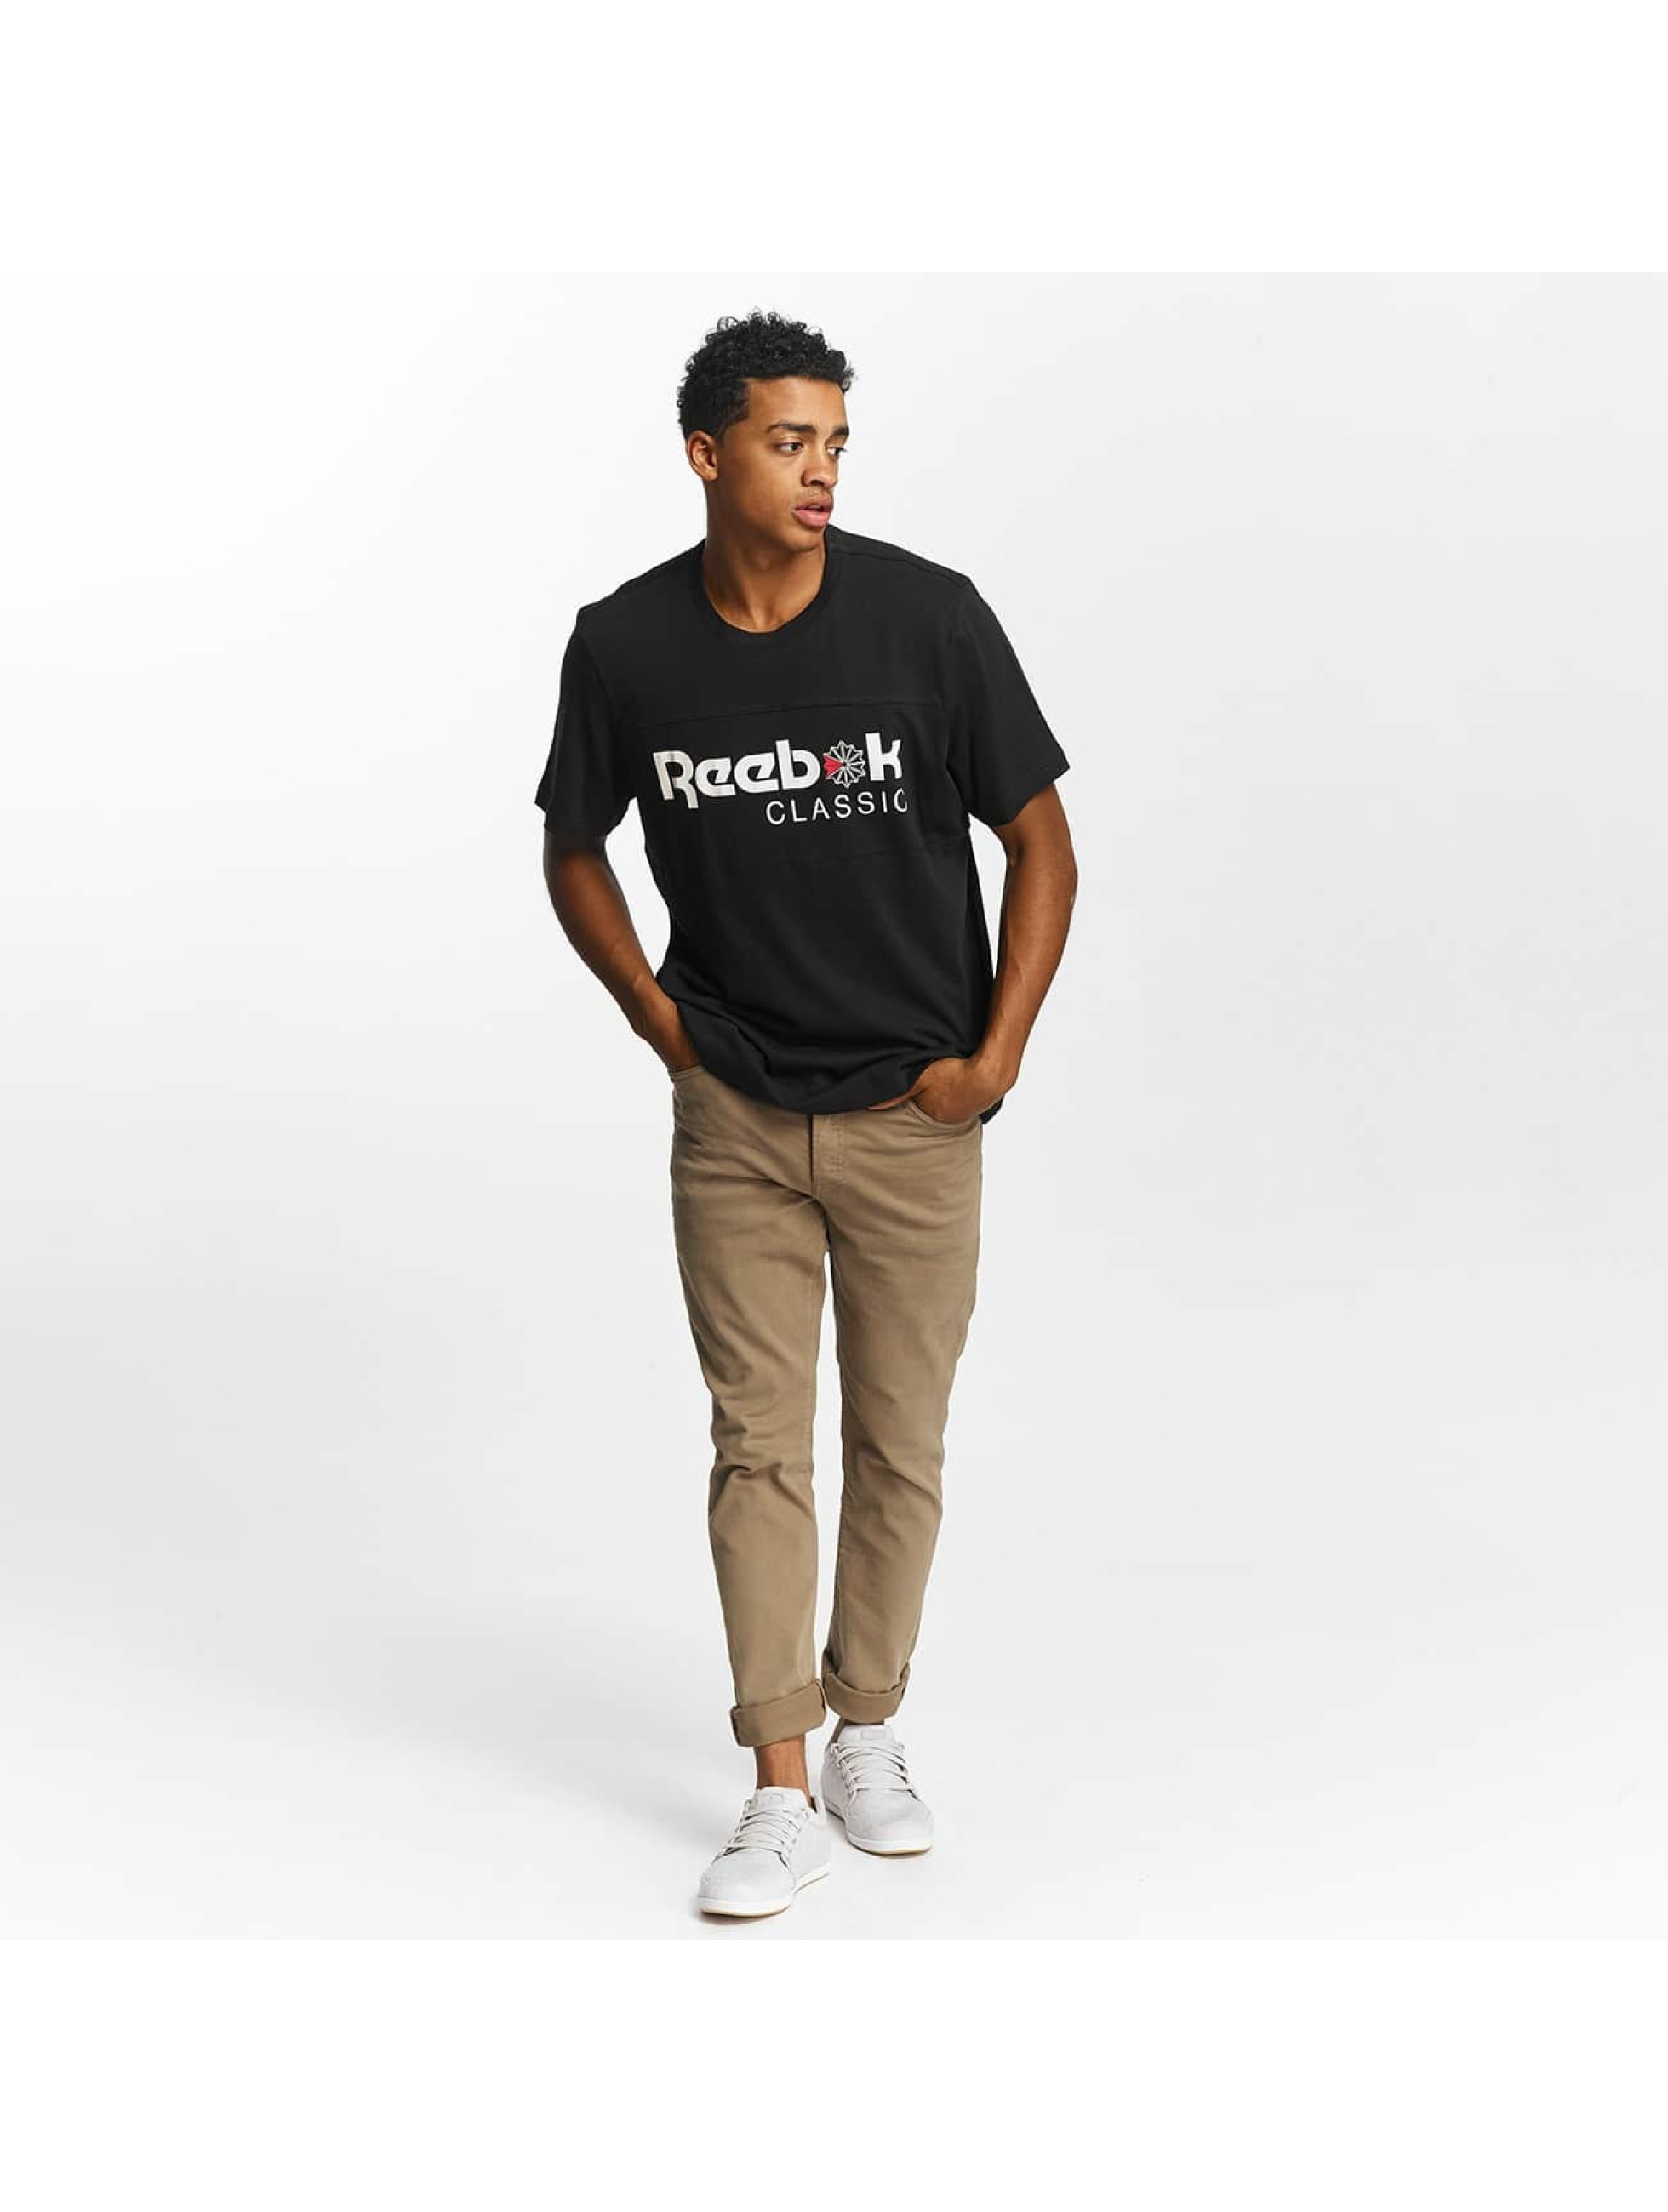 Reebok-Uomini-Maglieria-T-shirt-F-Franchise-Iconic